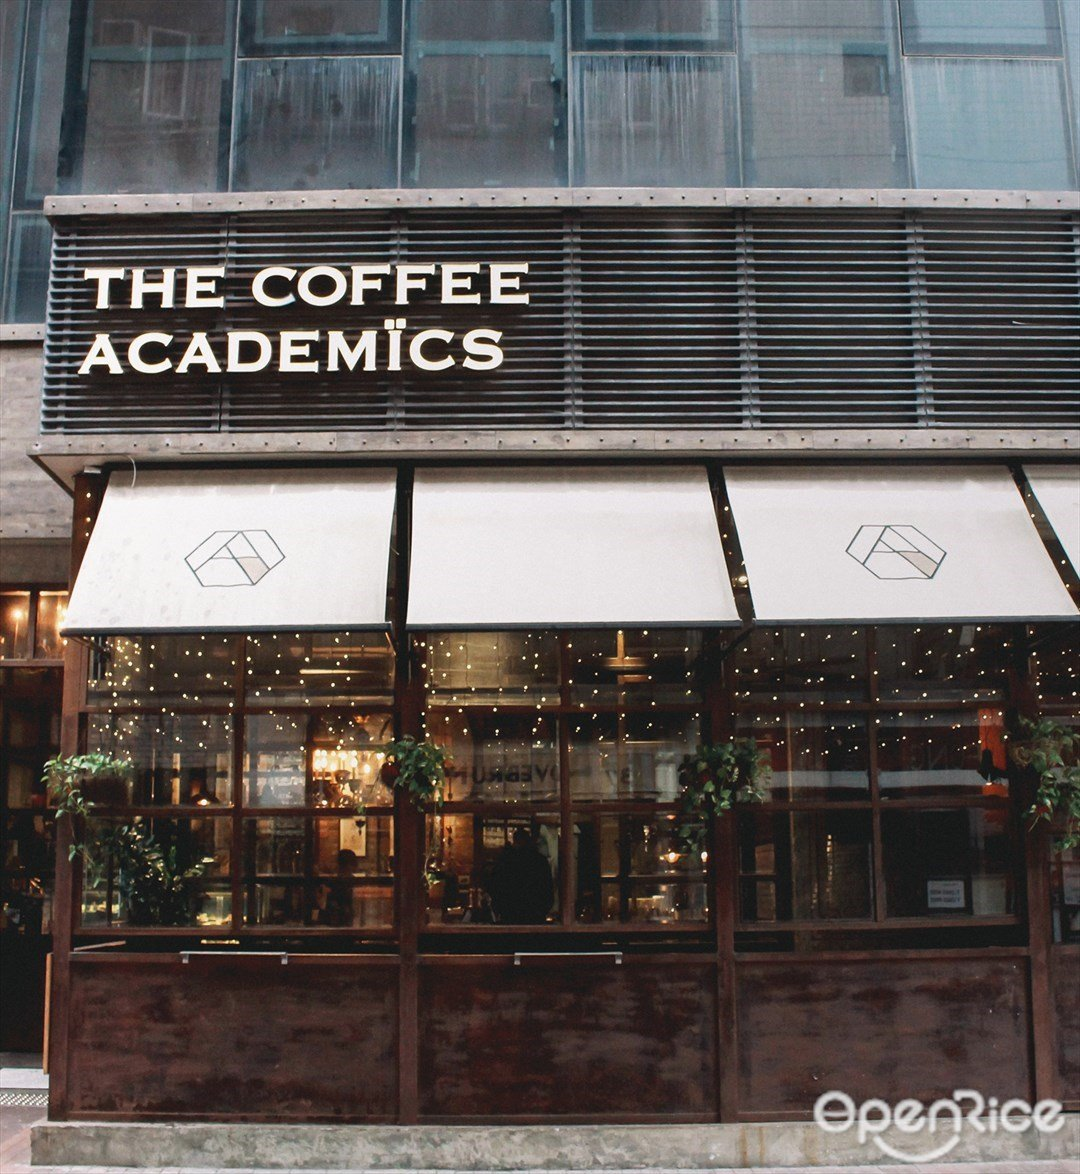 The Coffee Academics Yiu Wa Street International Coffee Shop Casual Drink In Causeway Bay Hong Kong Openrice Hong Kong